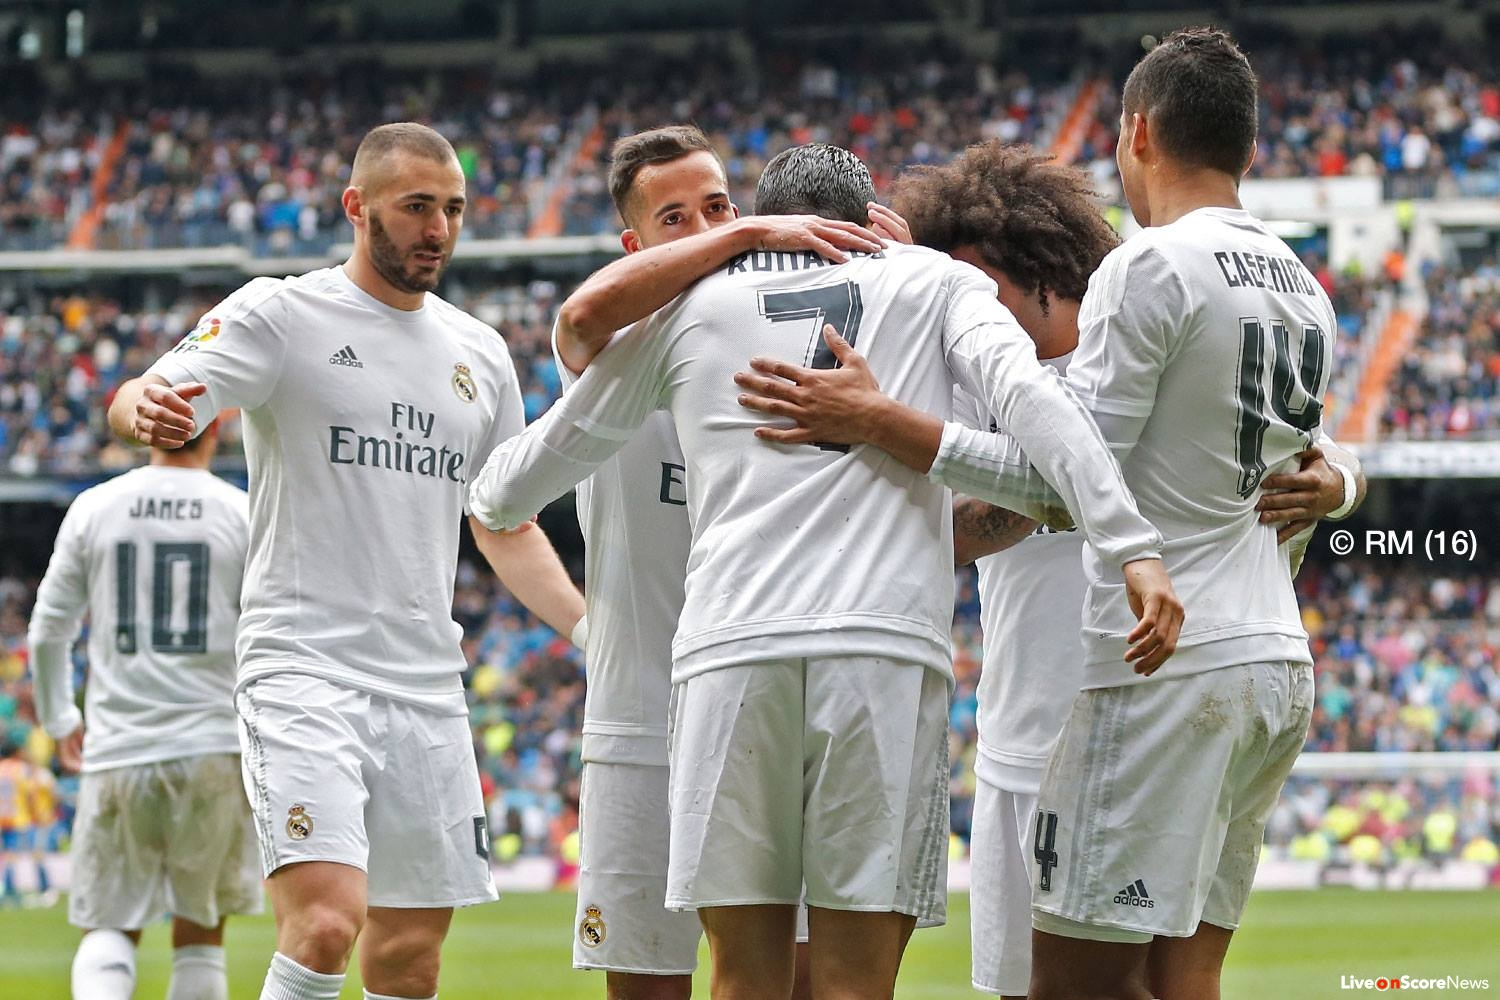 Real Madrid move into second with entertaining victory